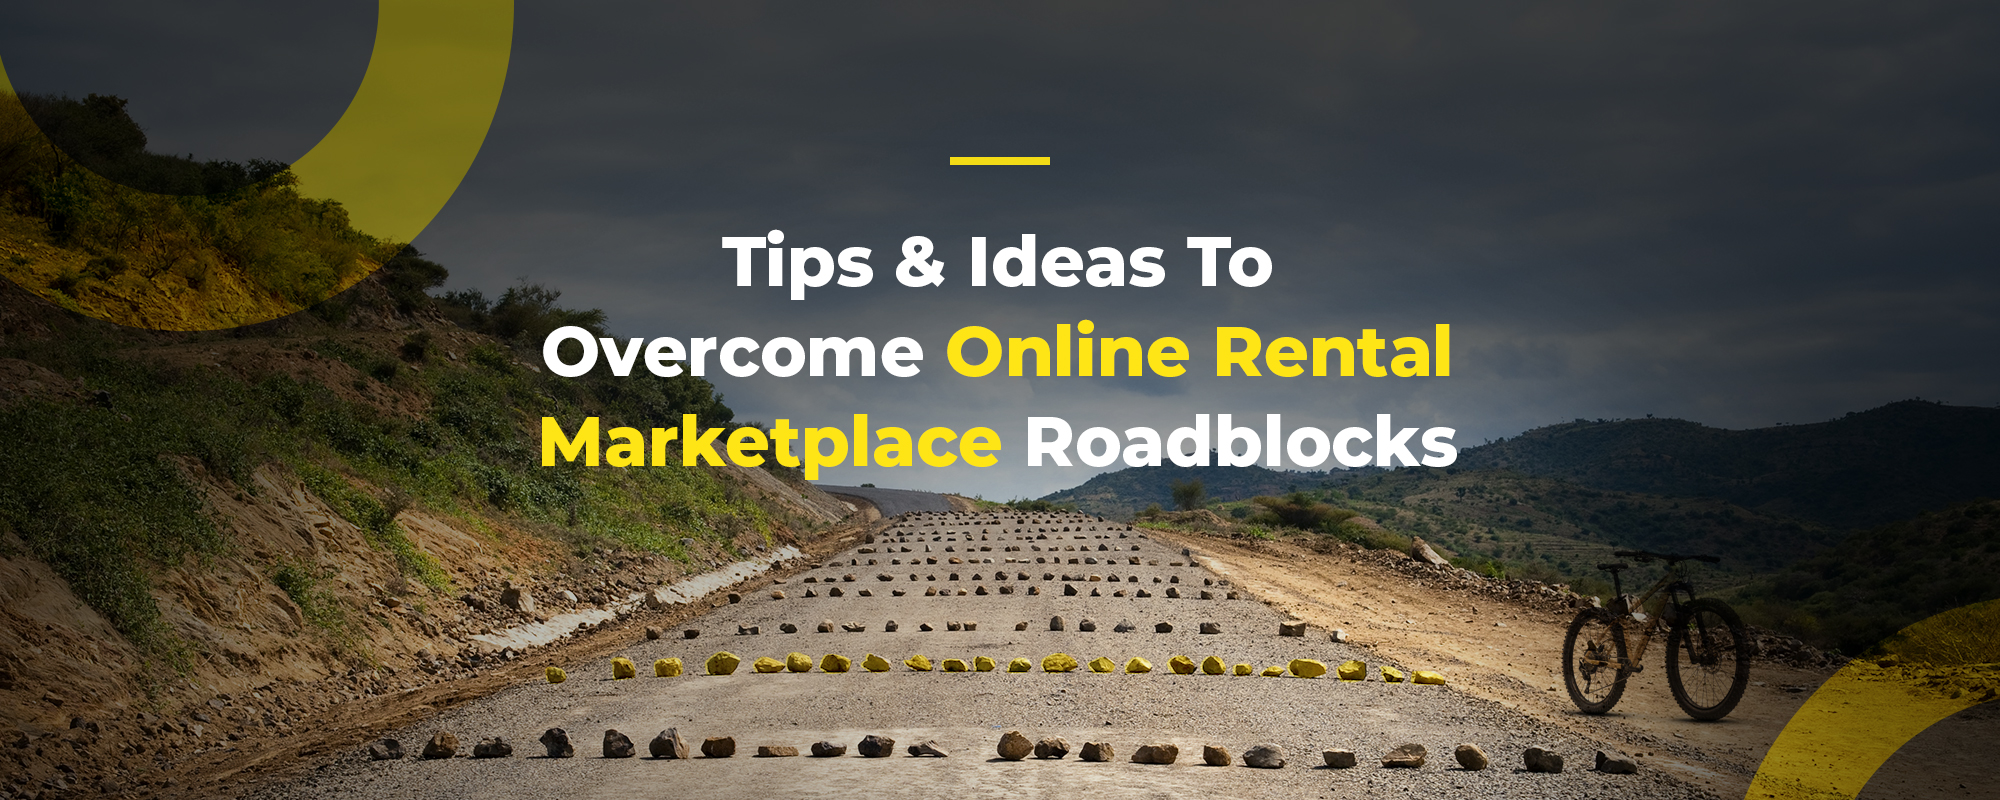 Major Roadblocks In Starting an Online Rental Marketplace – Key Tips & Ideas to Overcome